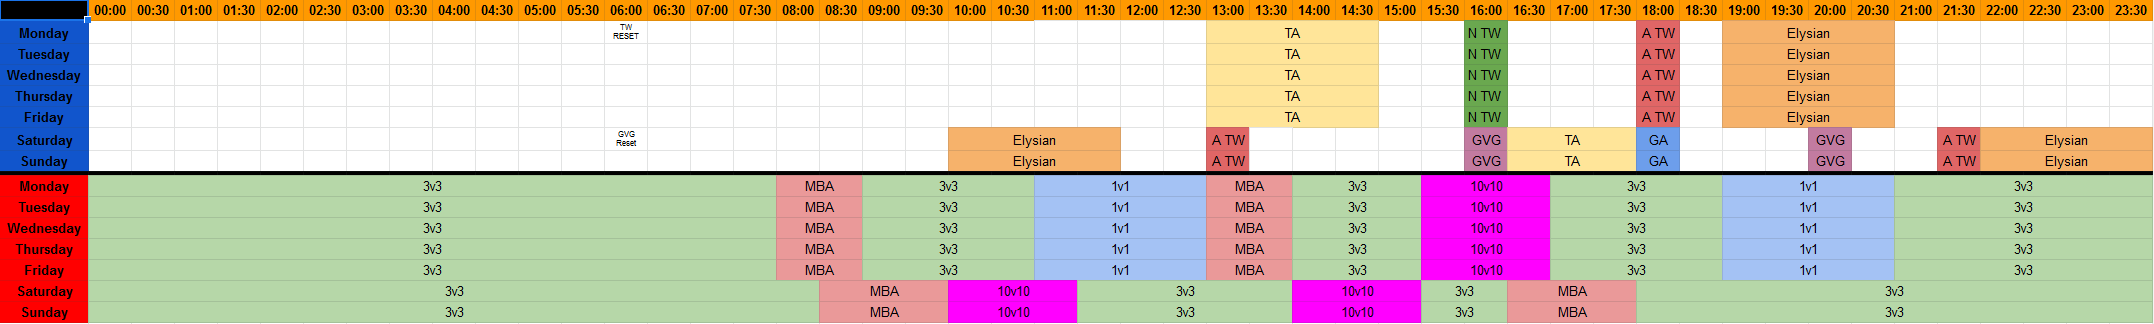 EE_PATCH_62_SCHEDULE.png